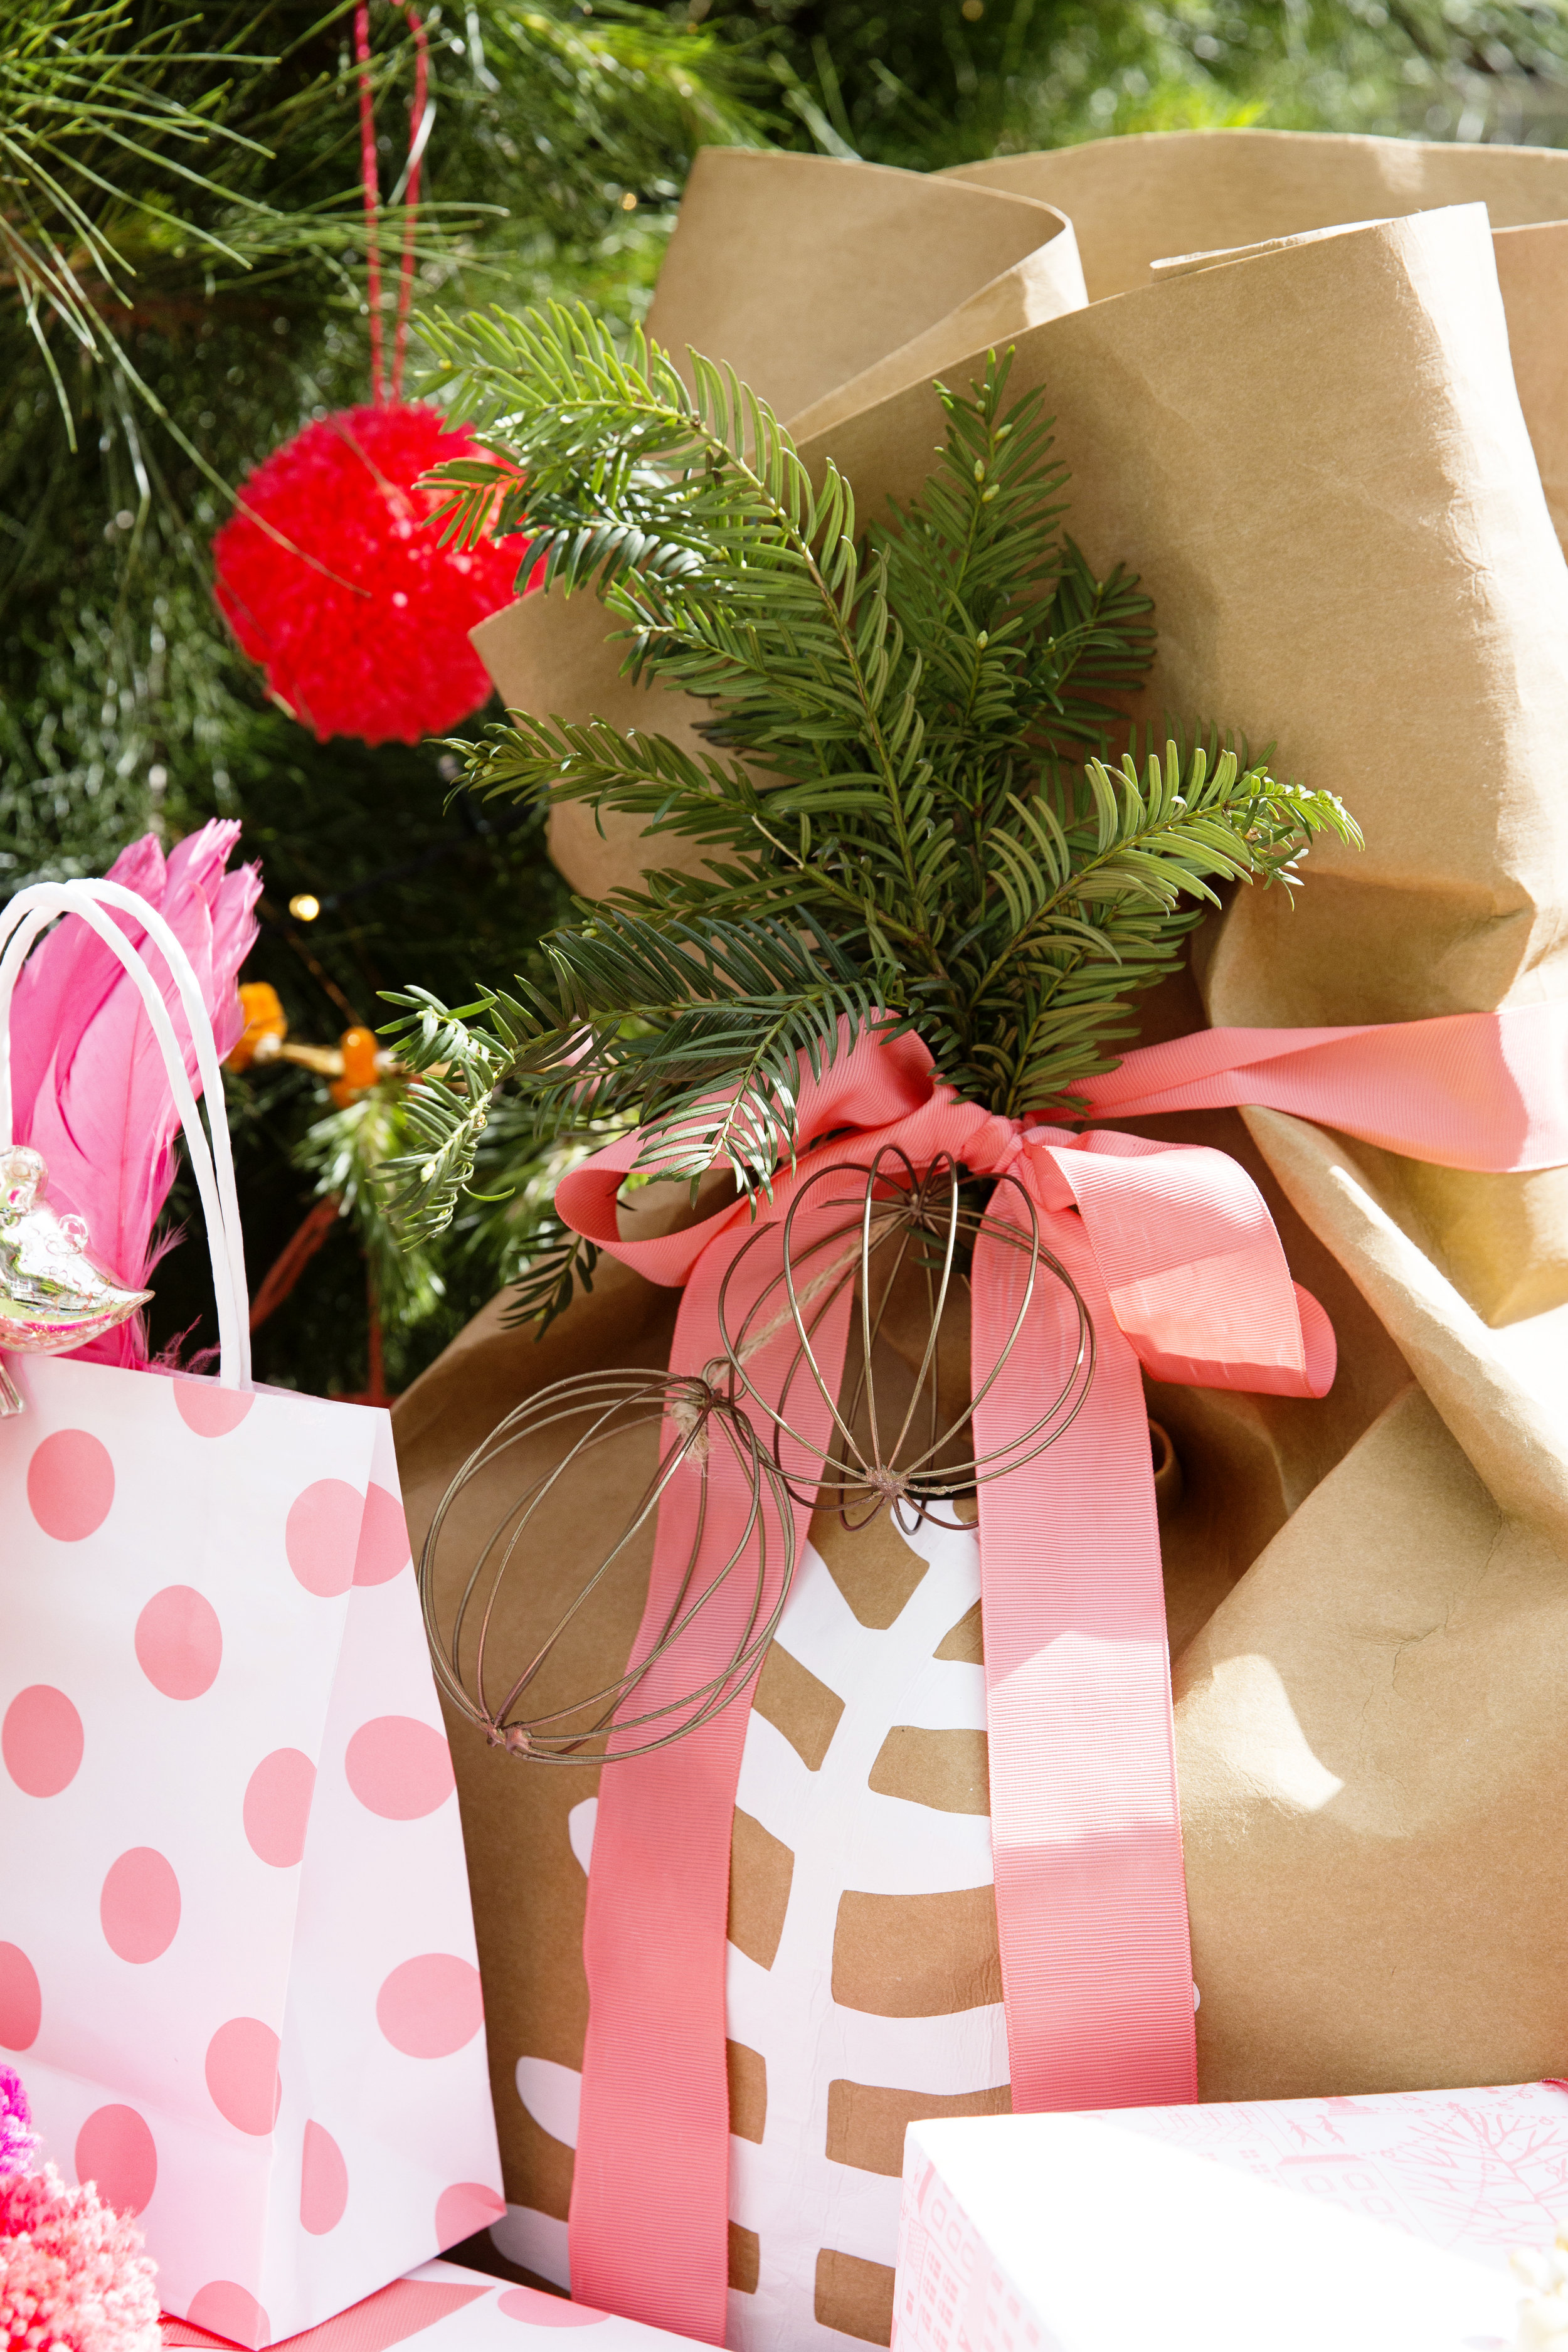 Gift Wrapping 059.JPG